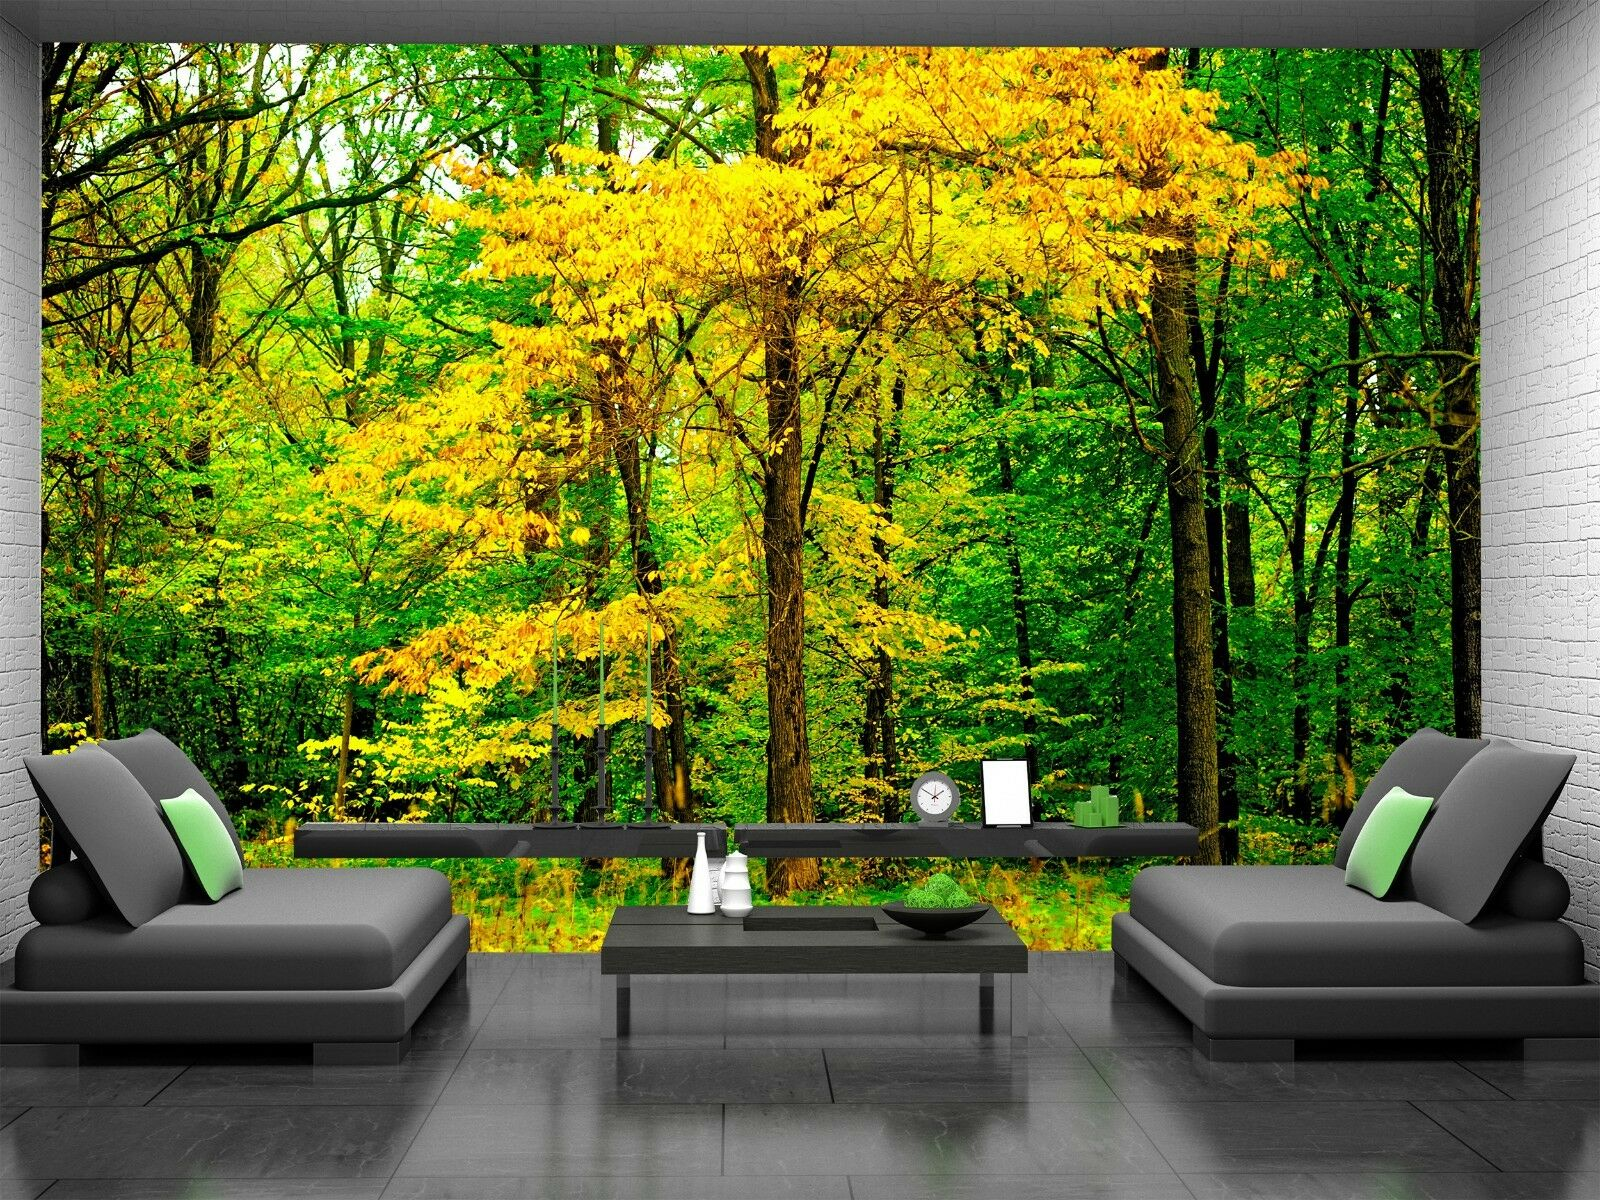 Leaves in the Forest  Photo Wallpaper Wall Mural DECOR Paper Poster Free Paste